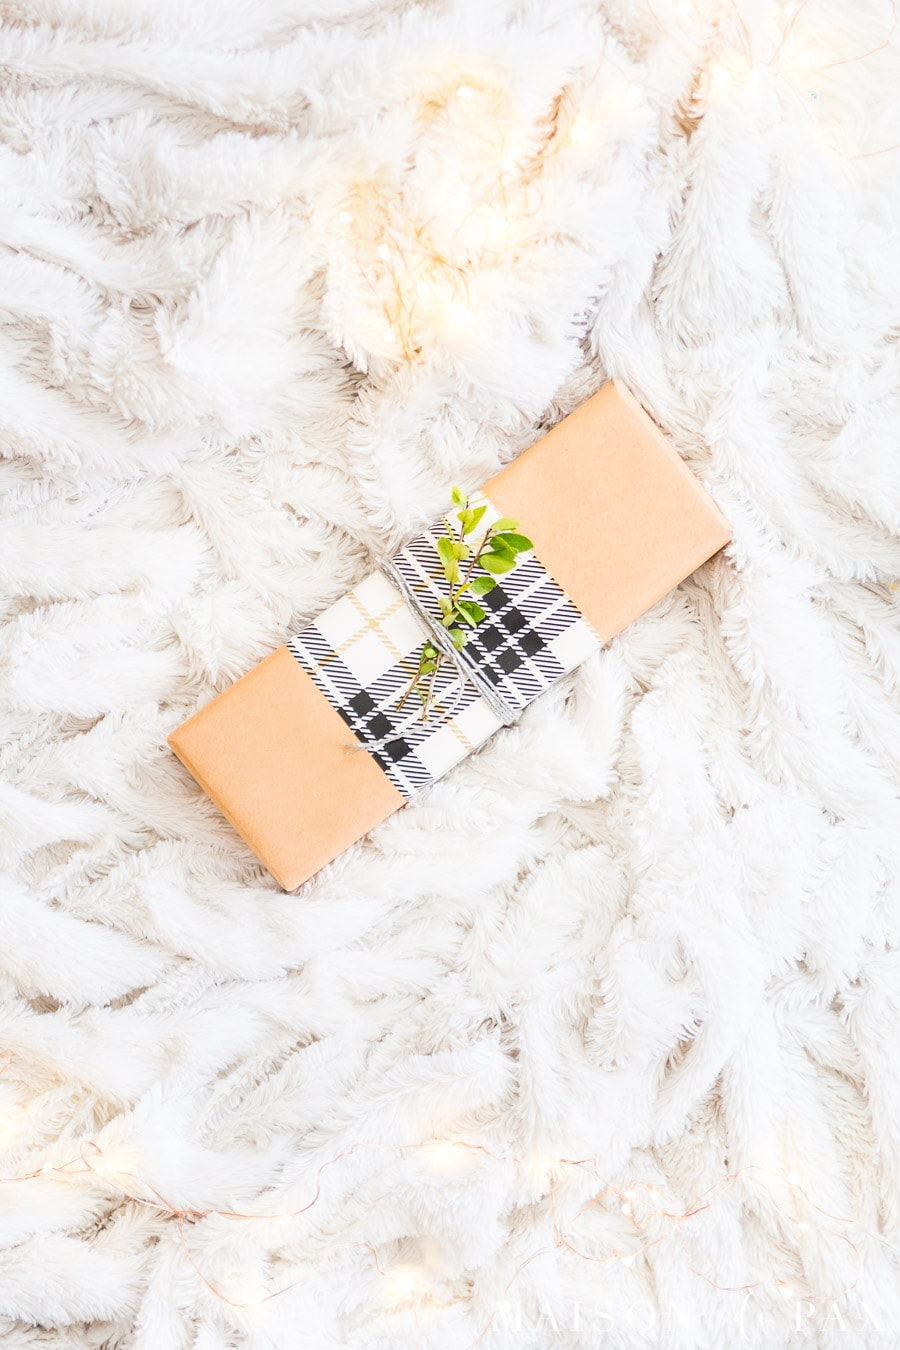 brown paper package with white plaid ribbon | Maison de Pax